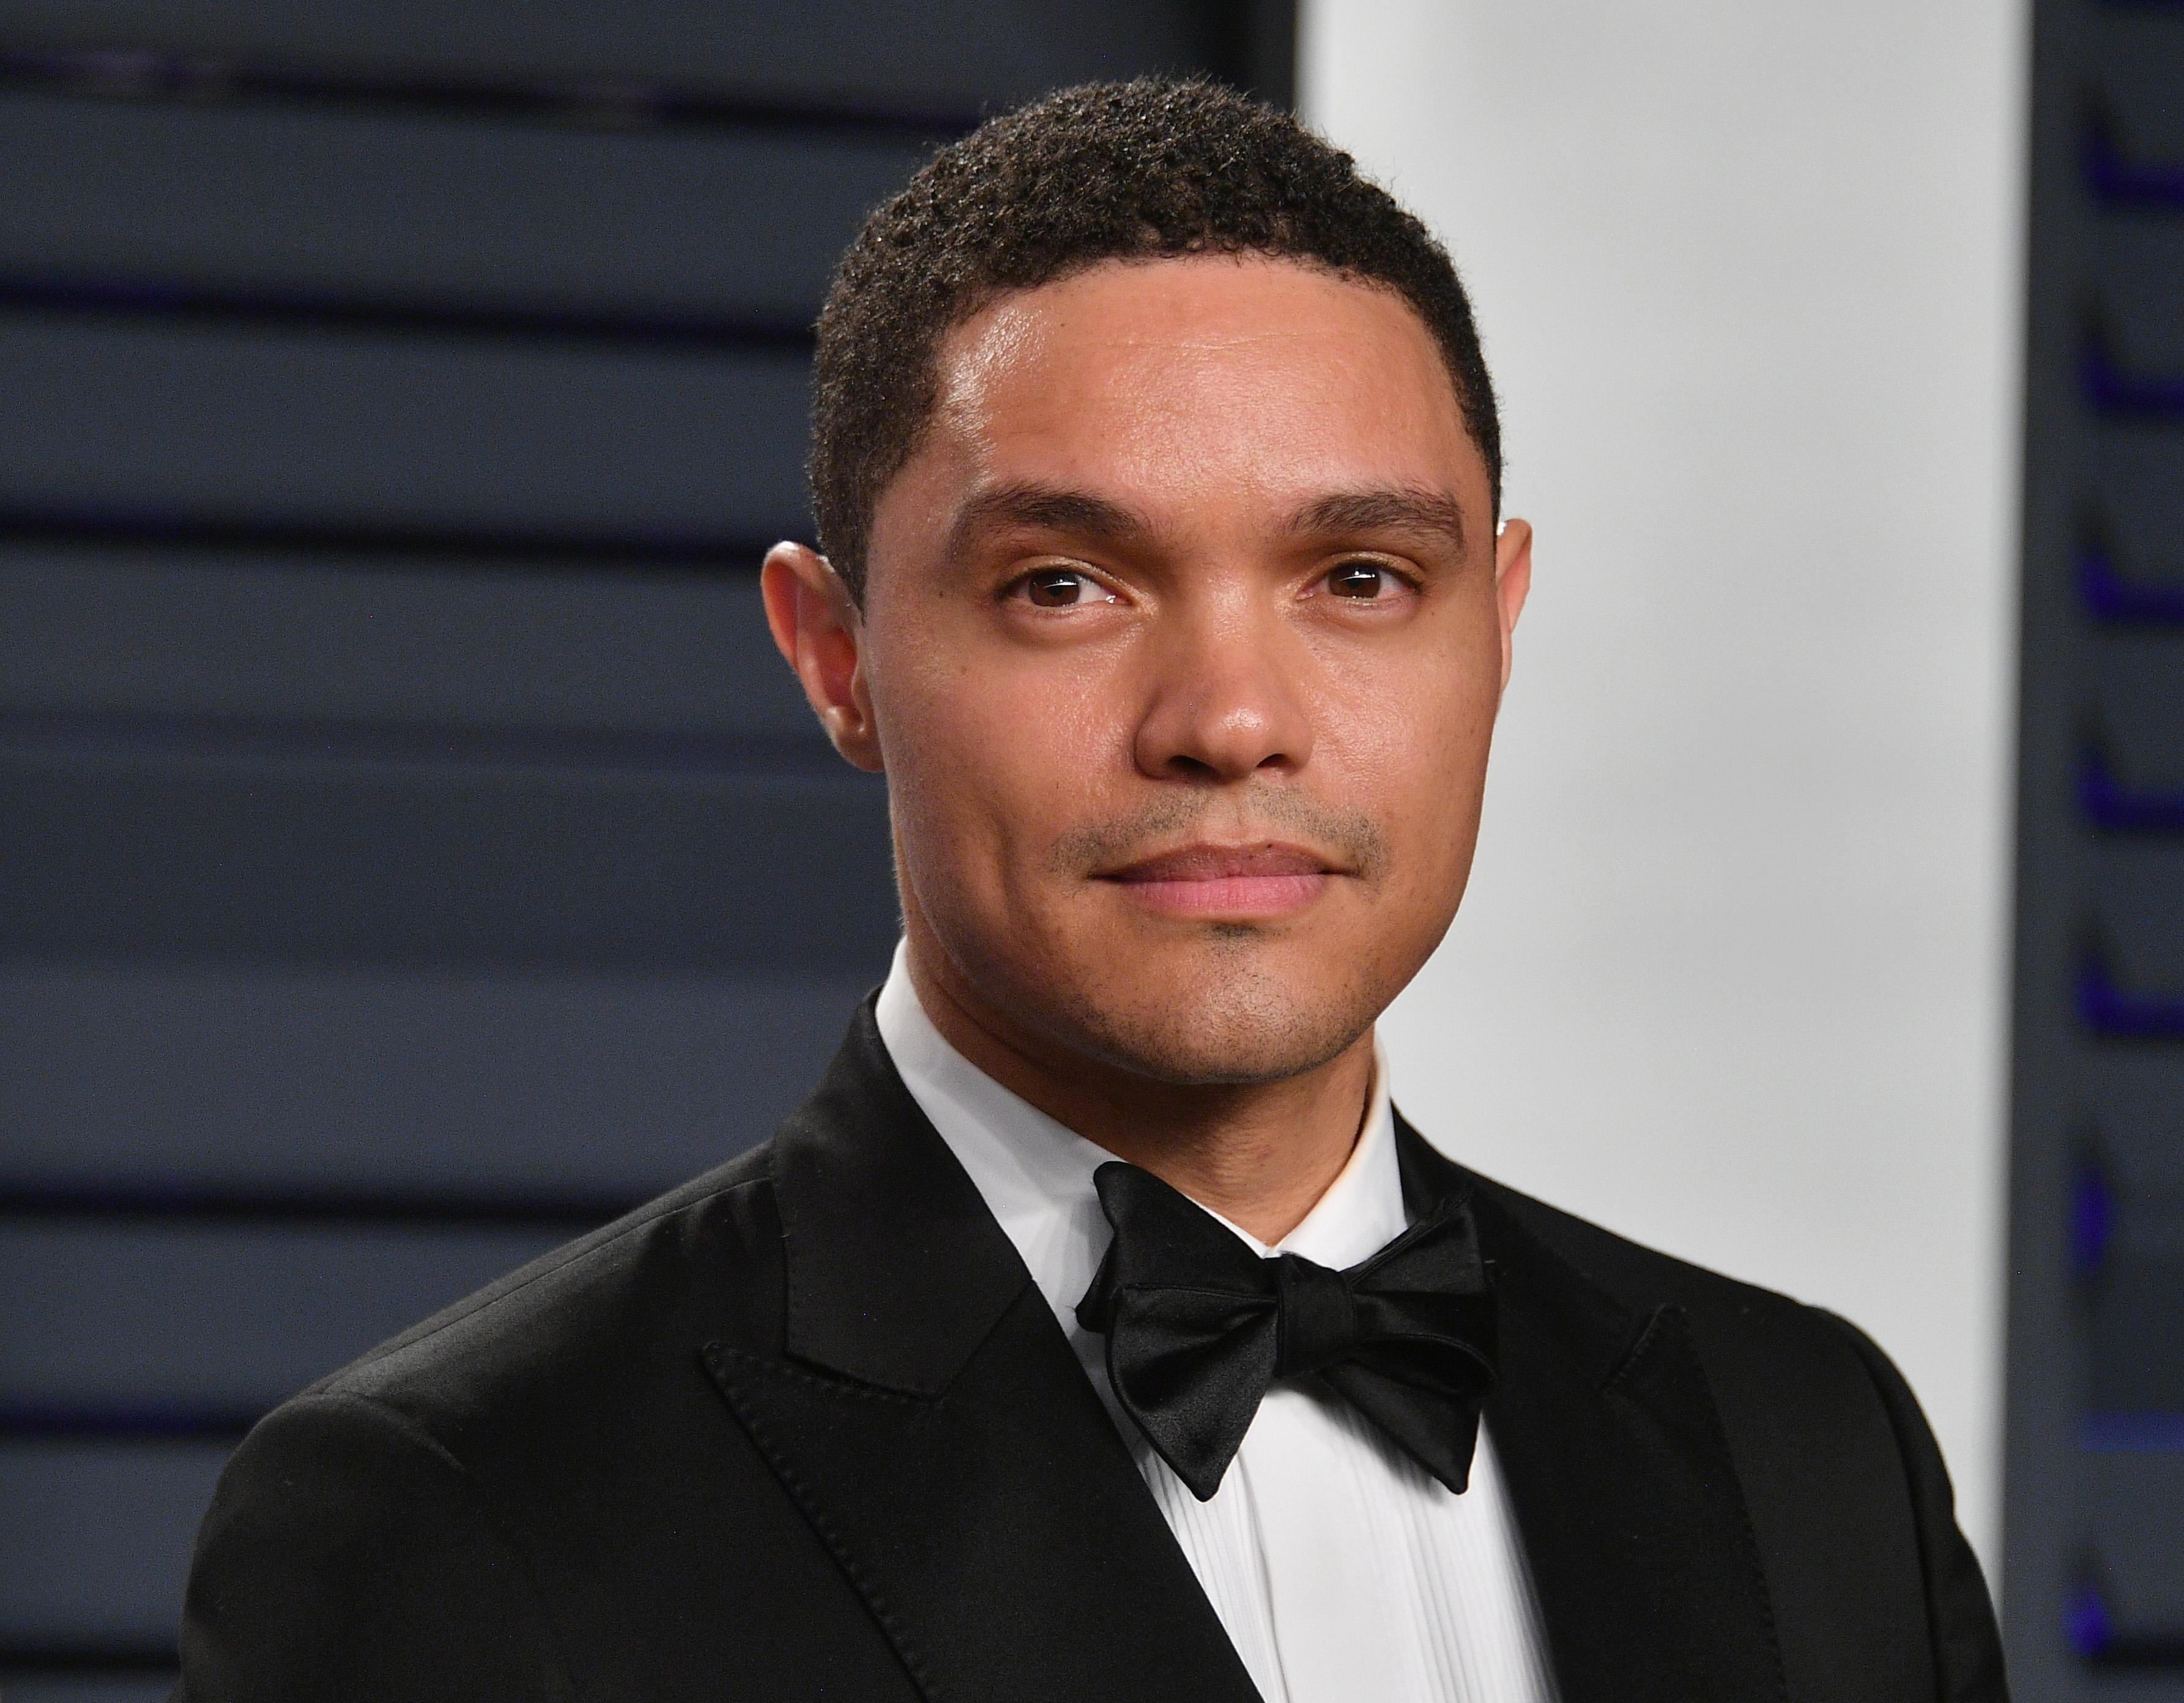 Close up of Daily Show Host Trevor Noah wearing a tuxedo and a black bow tie